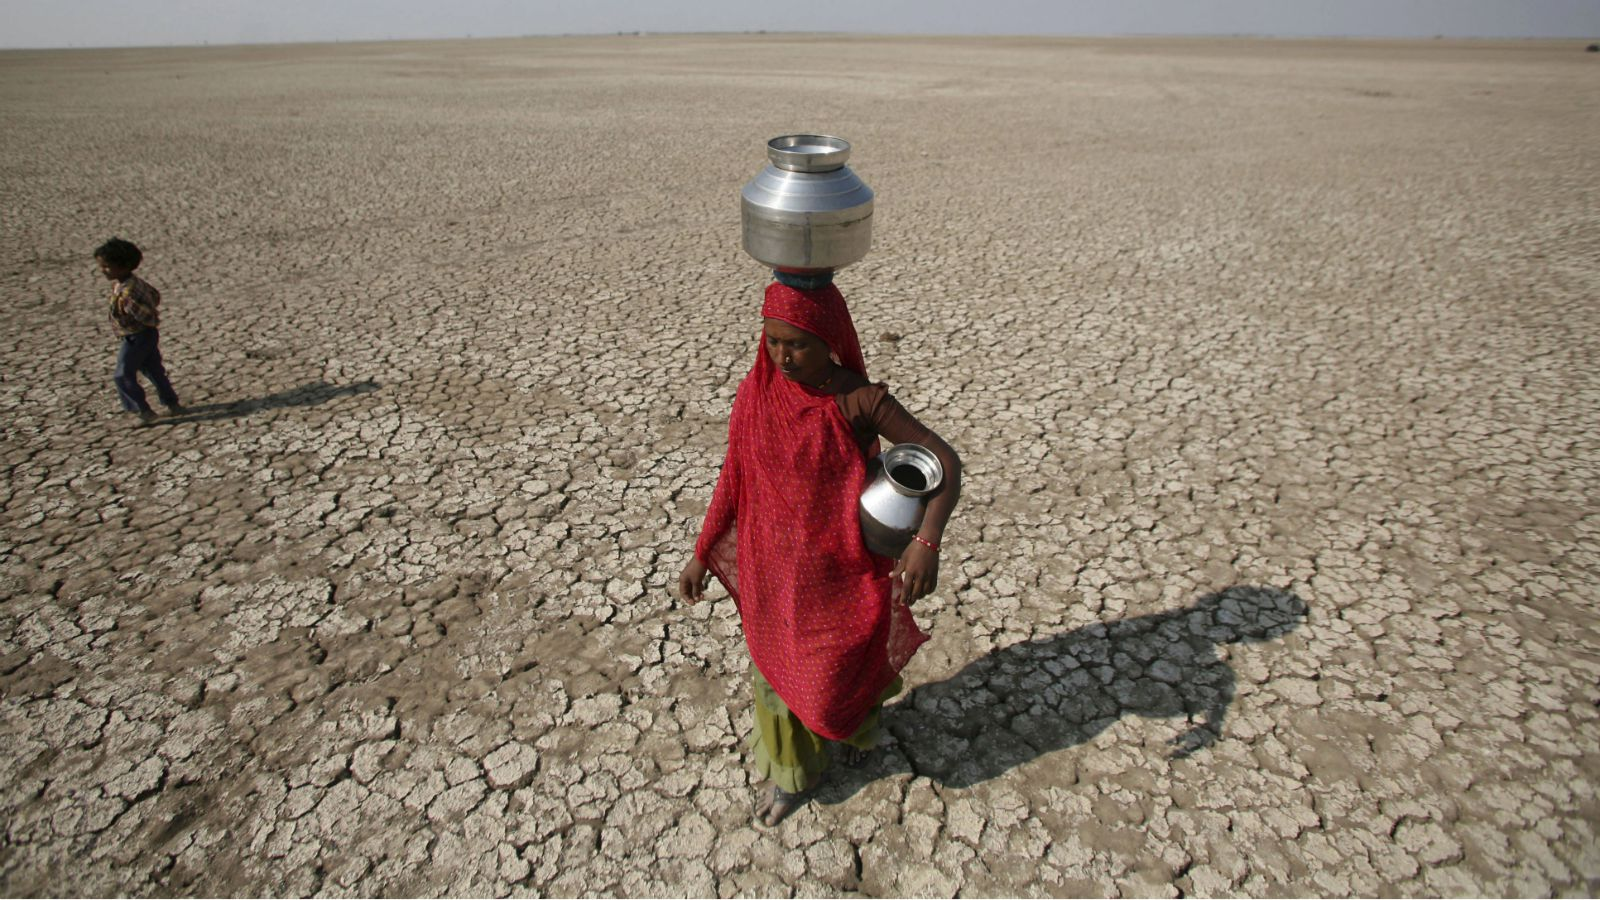 A salt worker carries metal pitchers to collect drinking water in Kharaghodha village, about 120 km (75 miles) west from the western Indian city of Ahmedabad November 7, 2009.